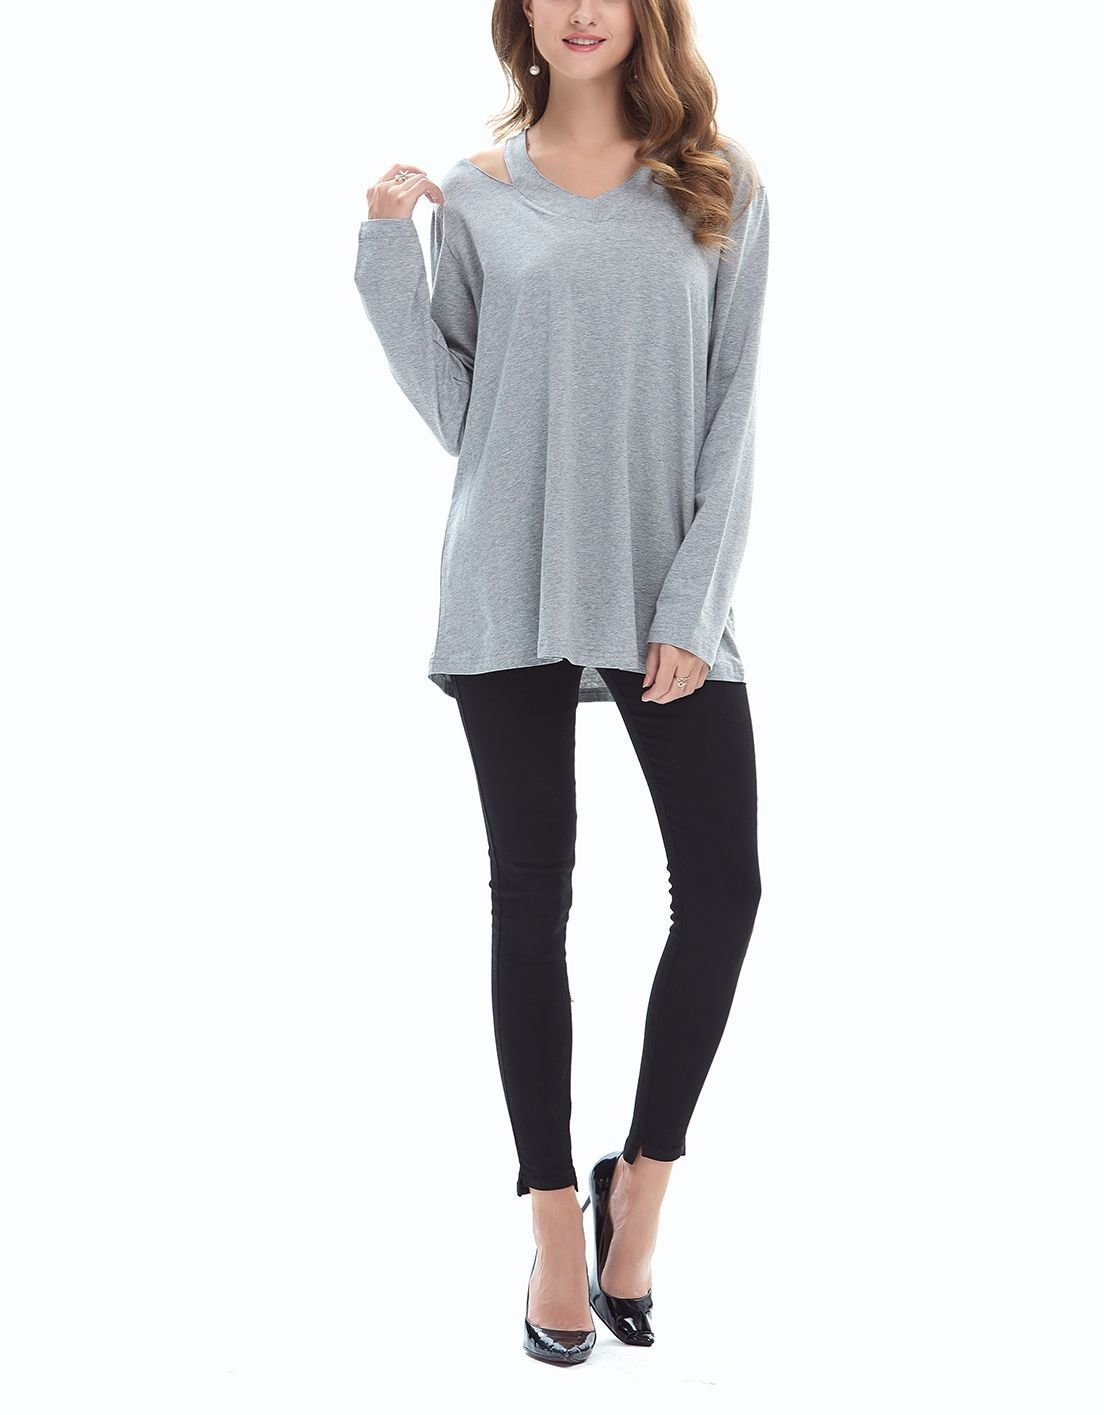 Large Size Tee with Slashed Neckline Detail